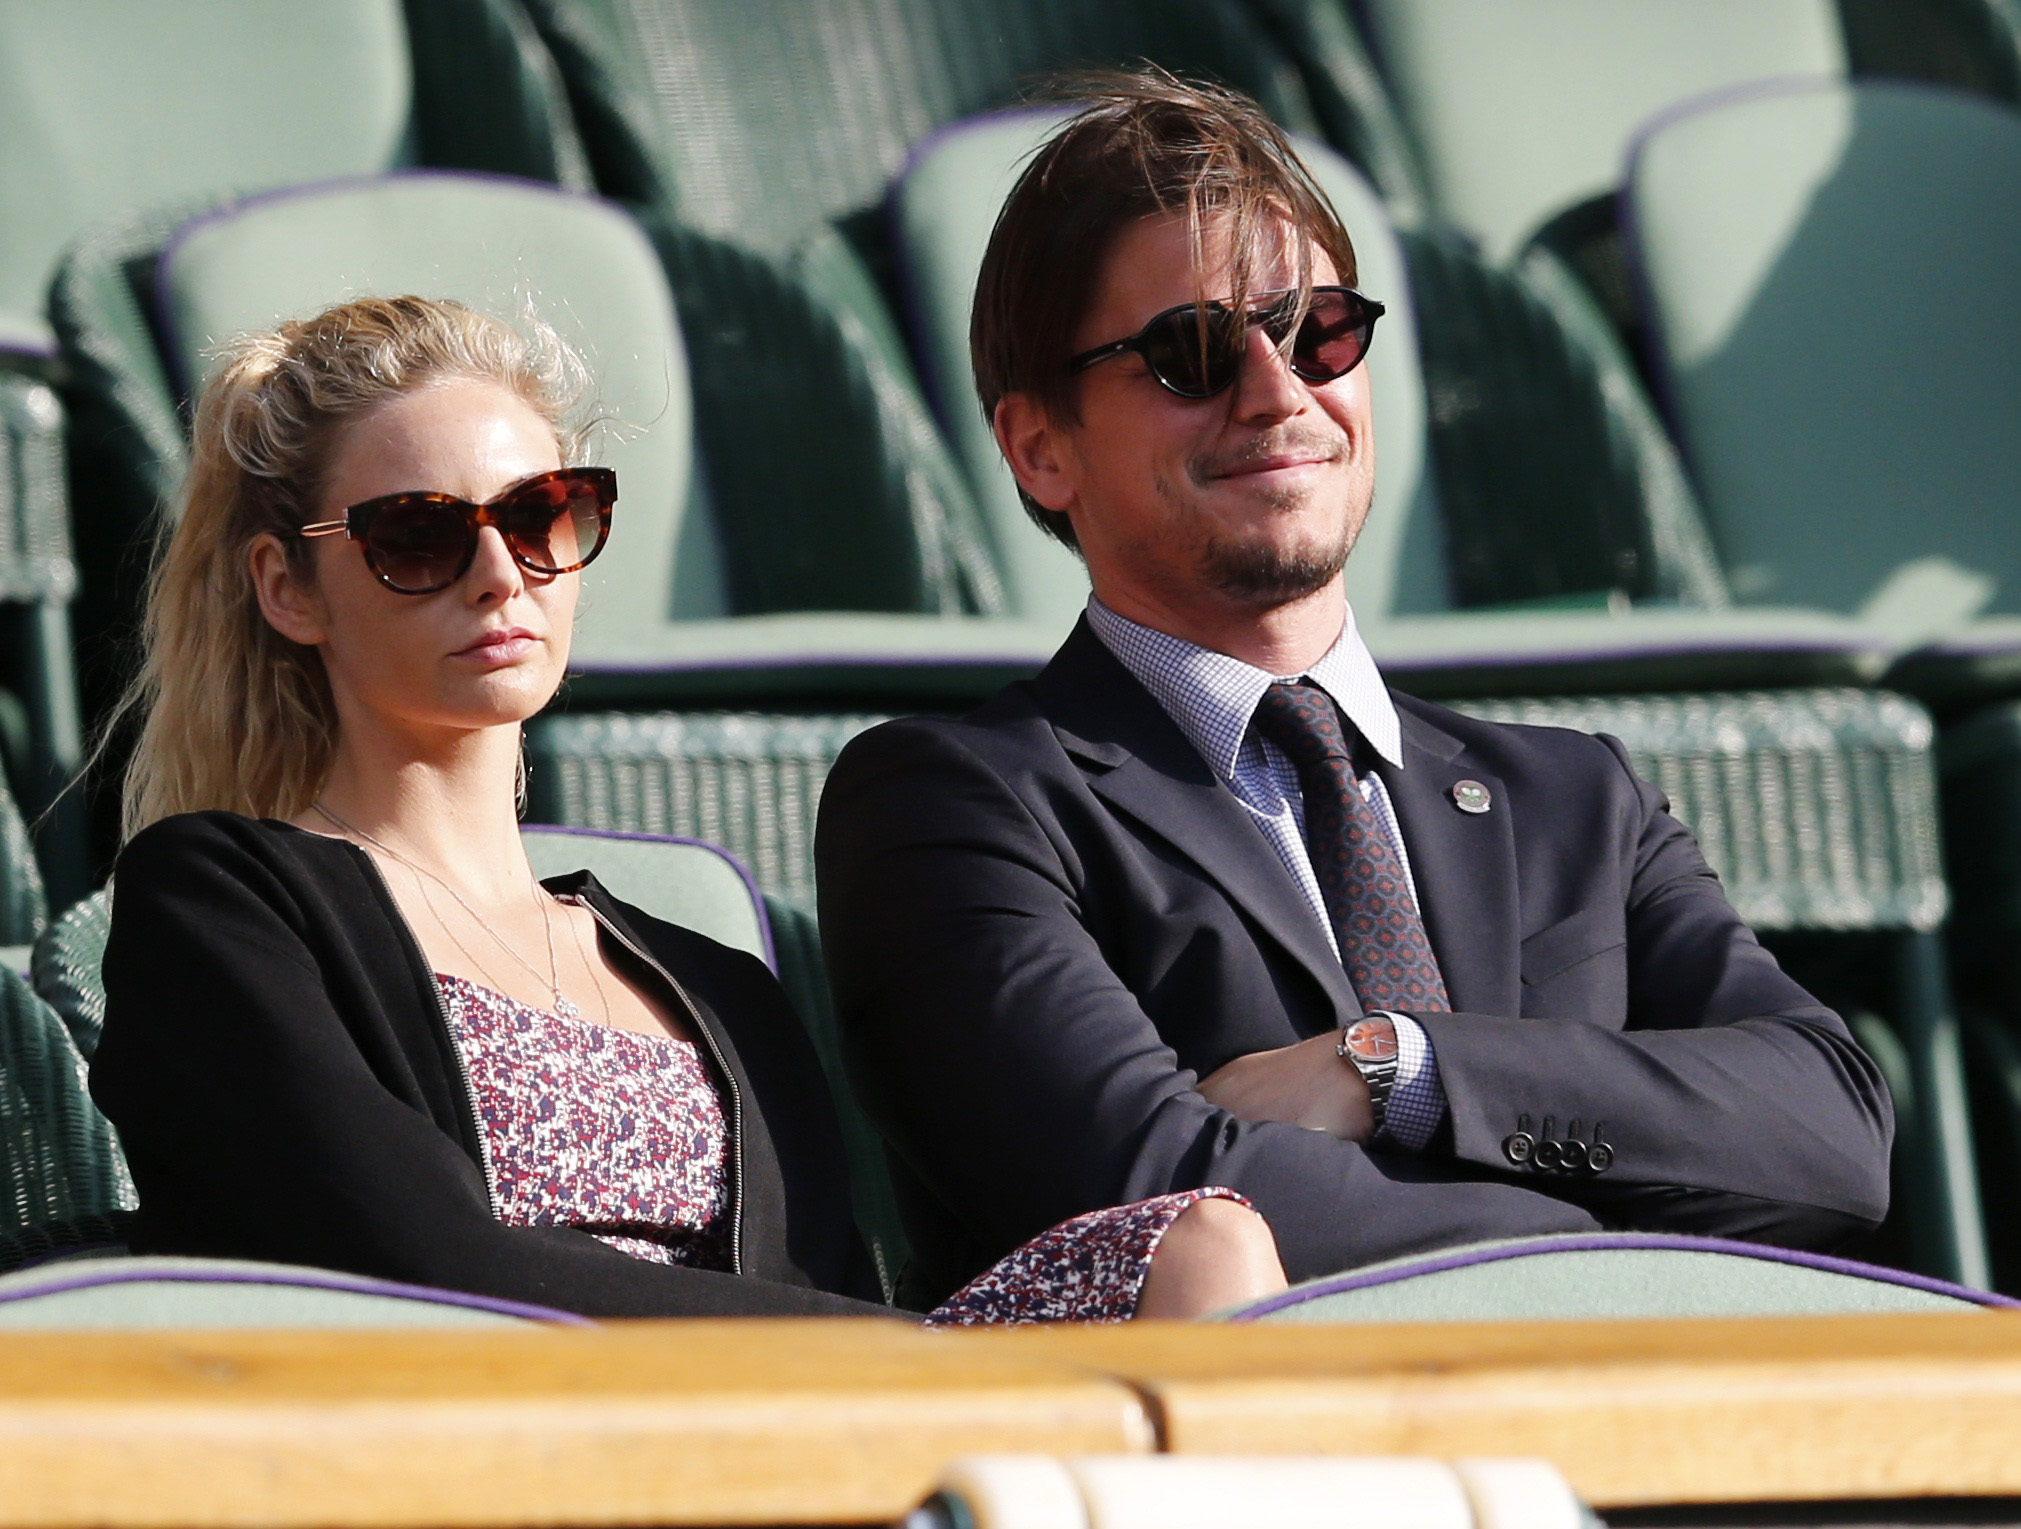 josh hartnett tamsin egerton attend wimbledon chat royal couple